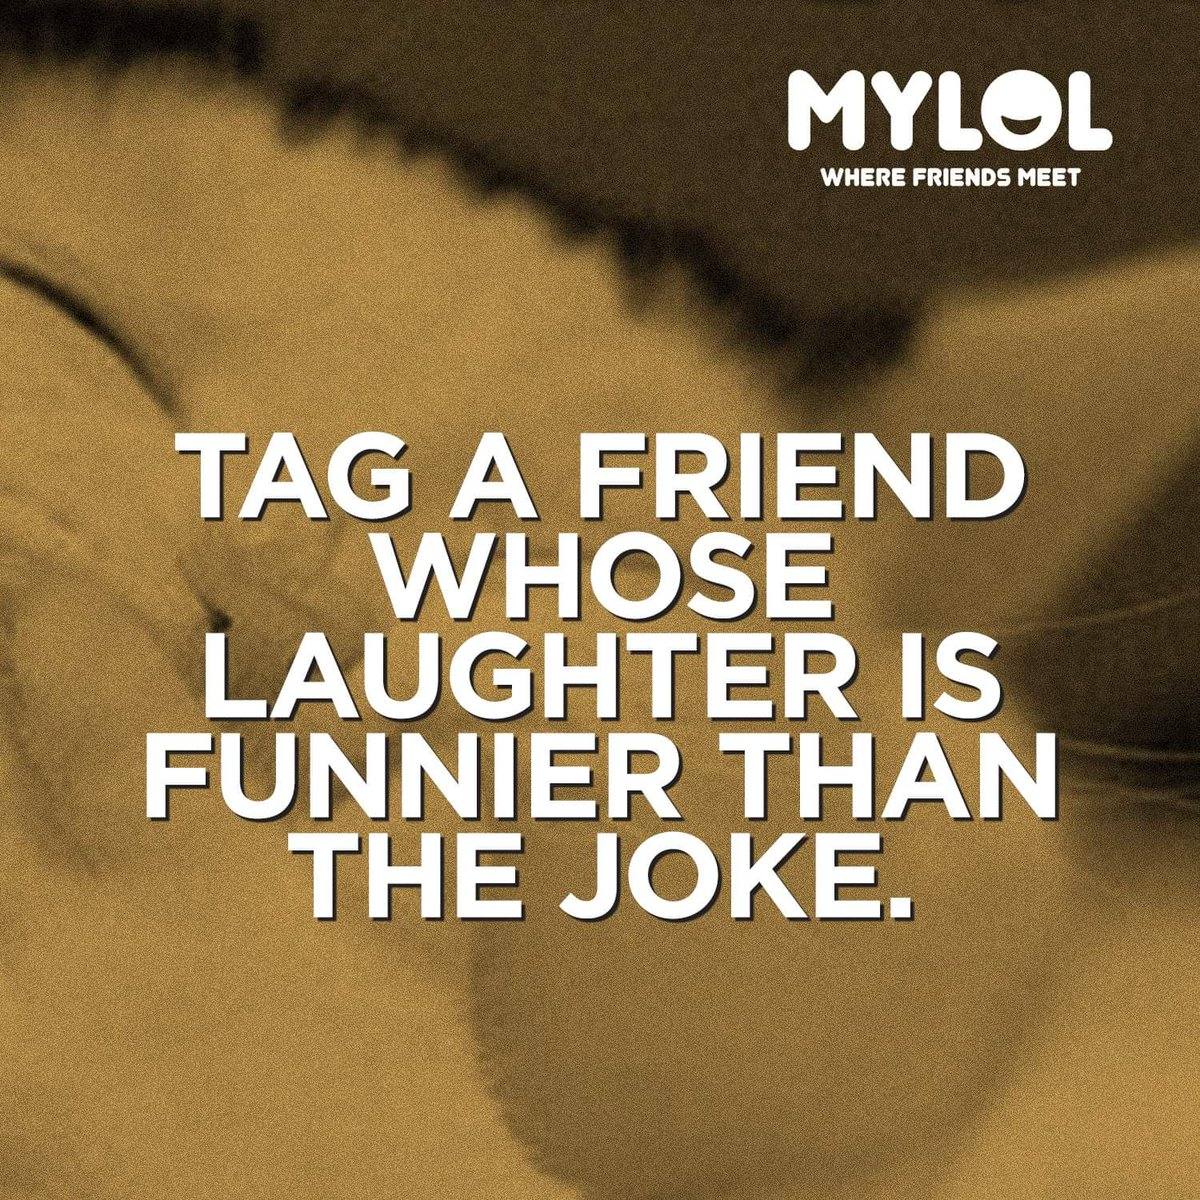 Tag a friend whose laughter is funnier than the joke. #tagafriend #tagyourfriend #laughter #funnier #joke #mylol<br>http://pic.twitter.com/B0pIX6utRZ